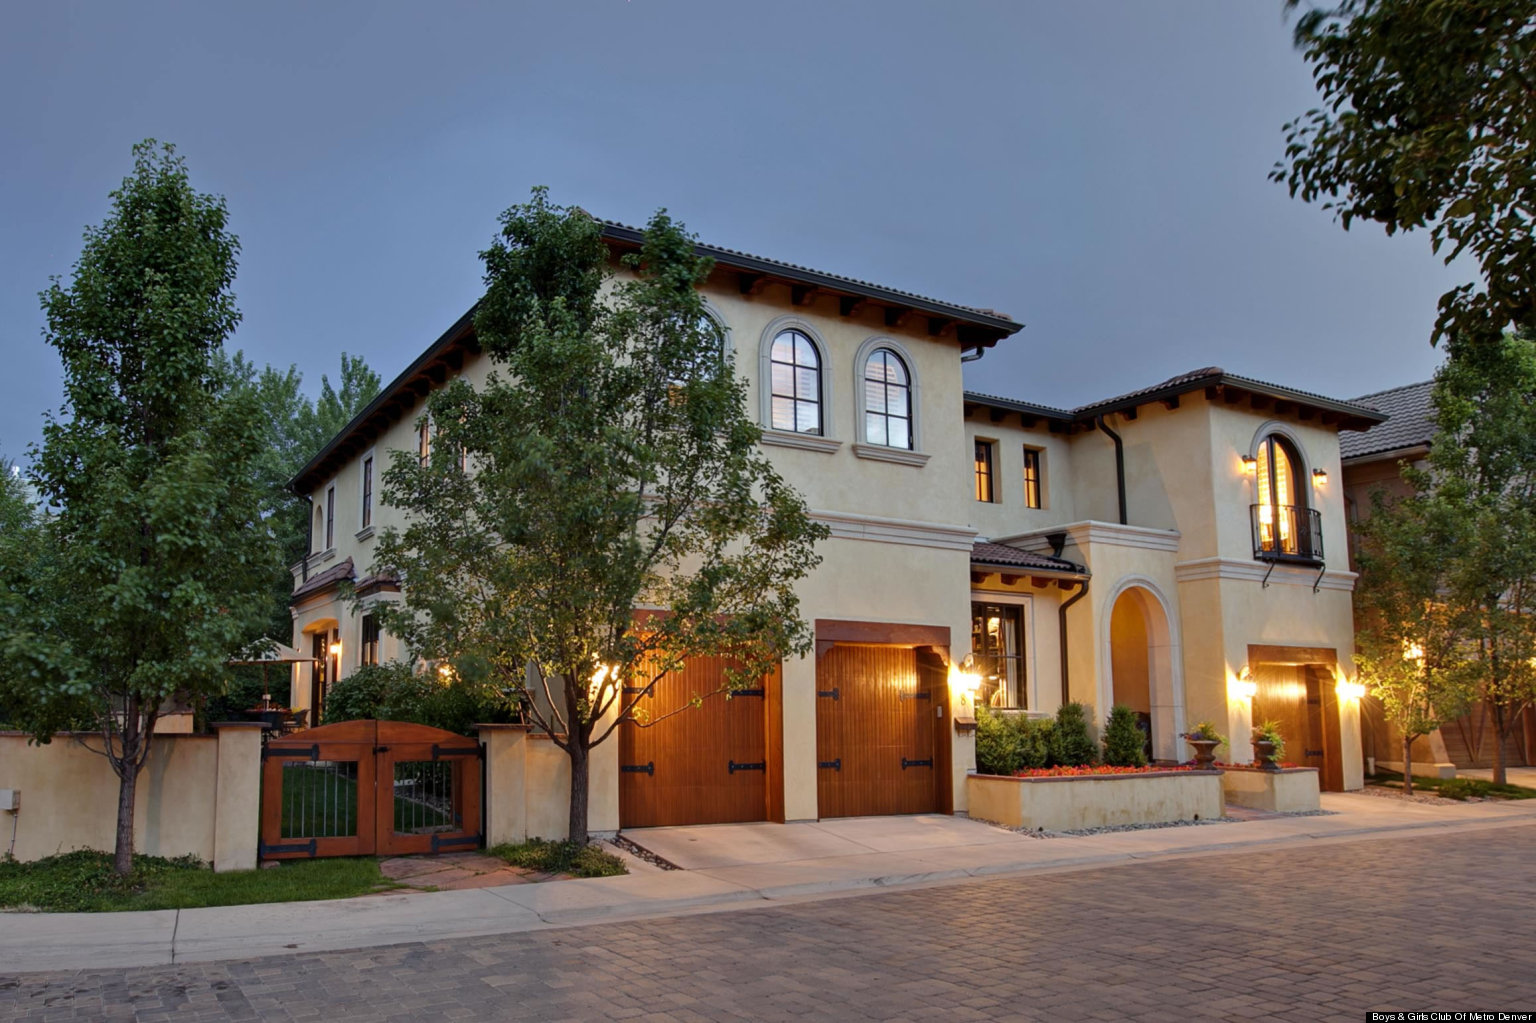 Denver Dream House Raffle Benefits The Boys Girls Club